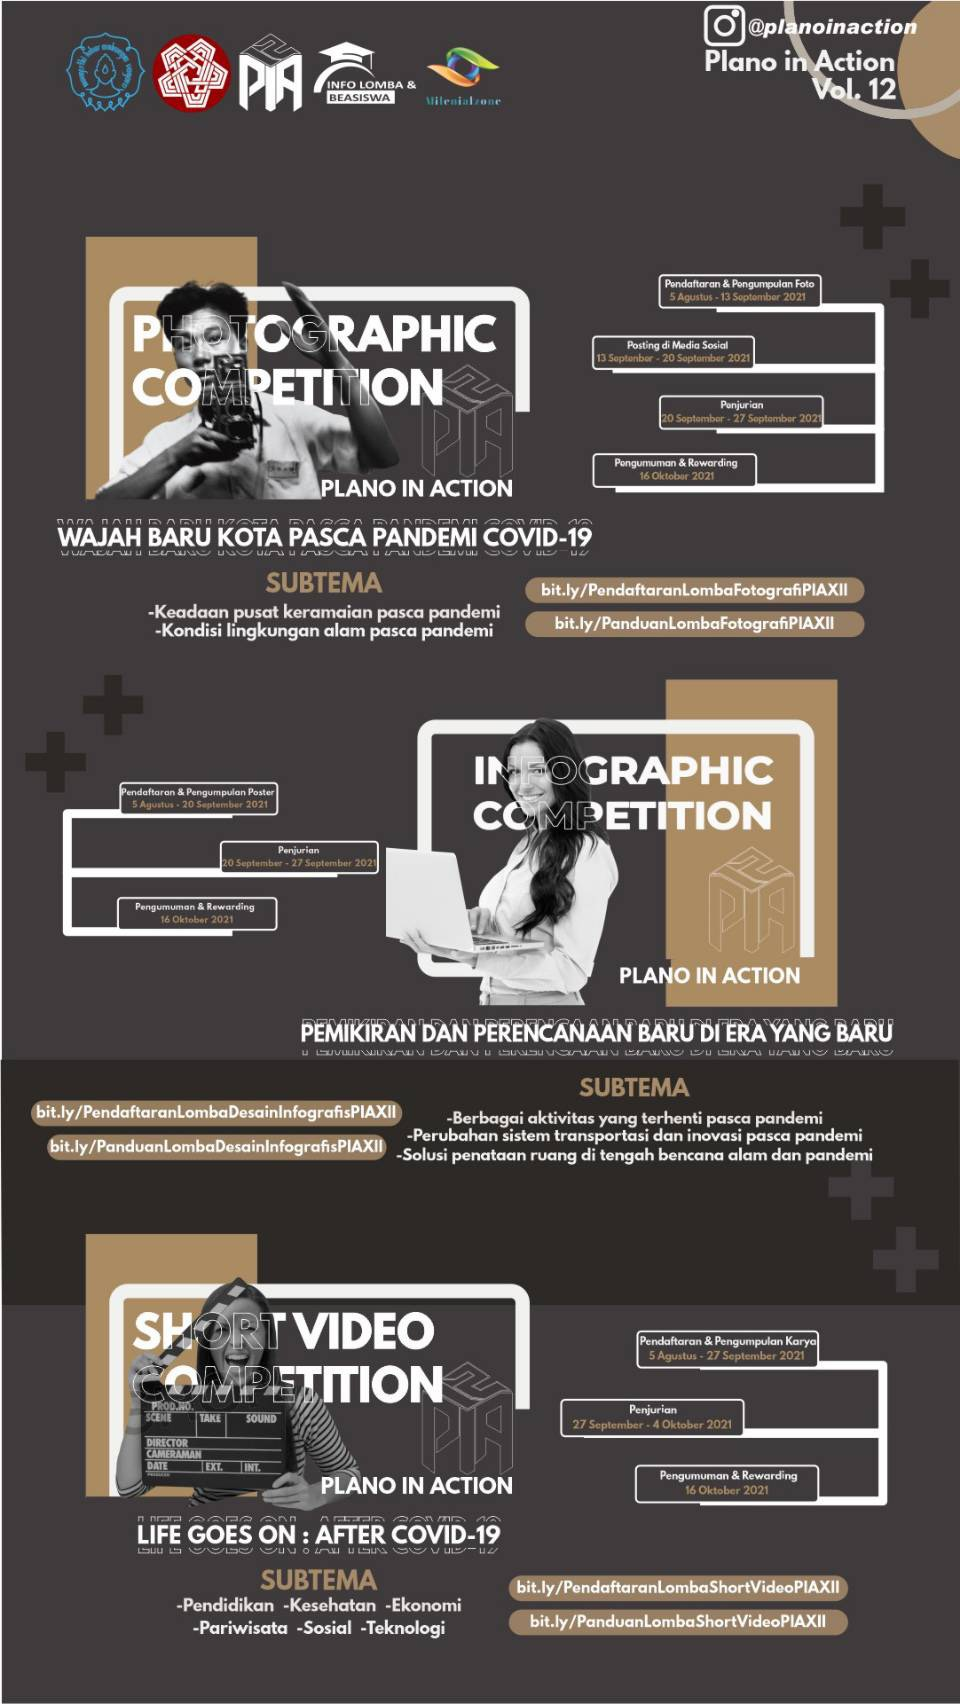 ✨PLANO IN ACTION VOL. 12 BY HMPWK UNS PROUDLY PRESENTS✨